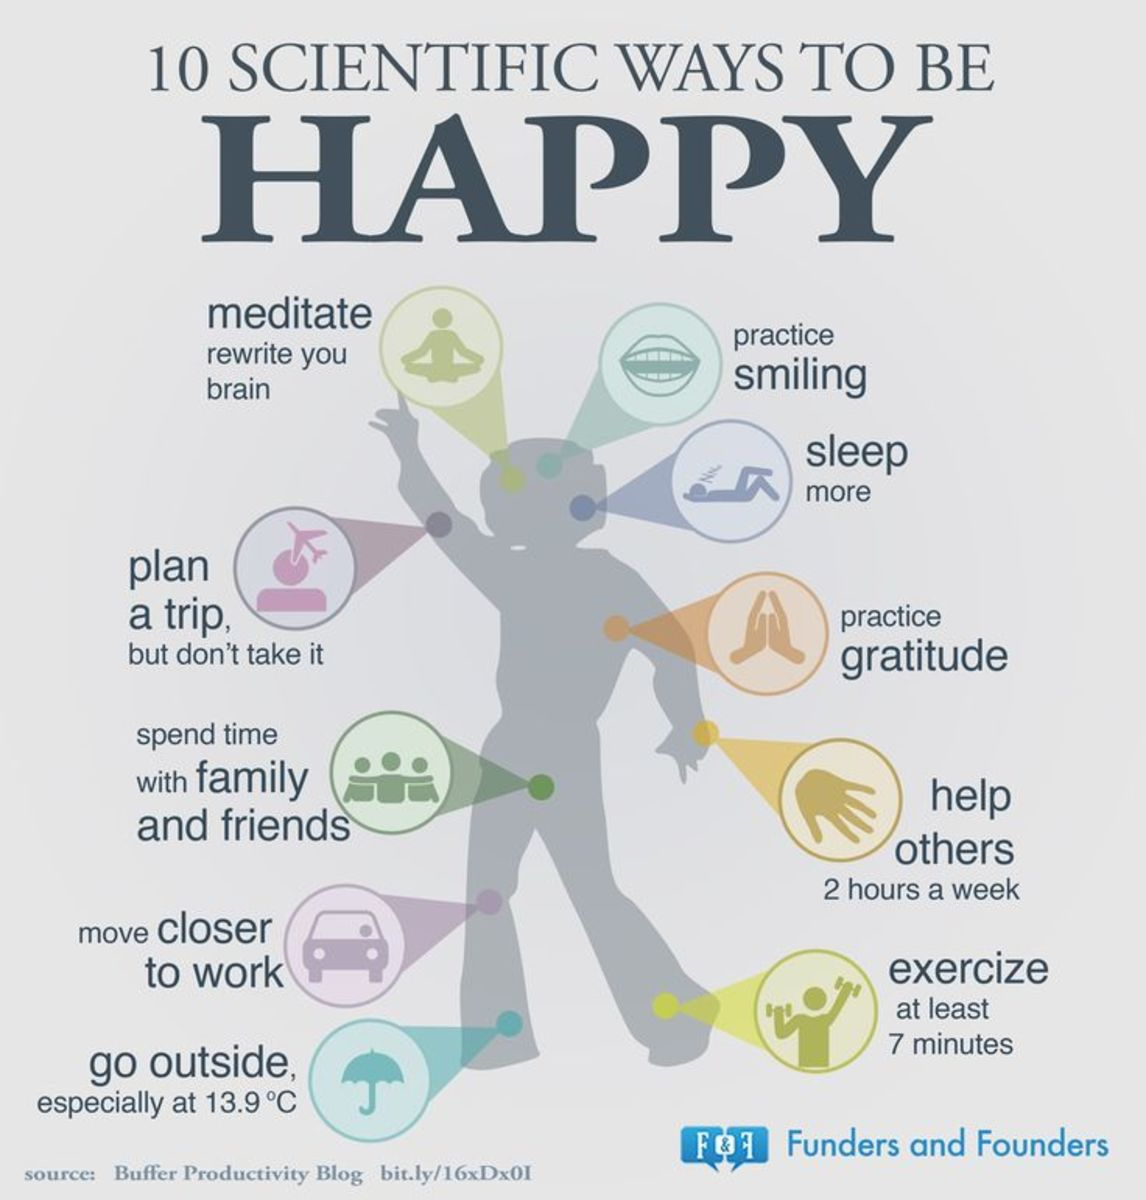 new-year-real-you-5-steps-to-claim-your-true-self-to-choose-happiness